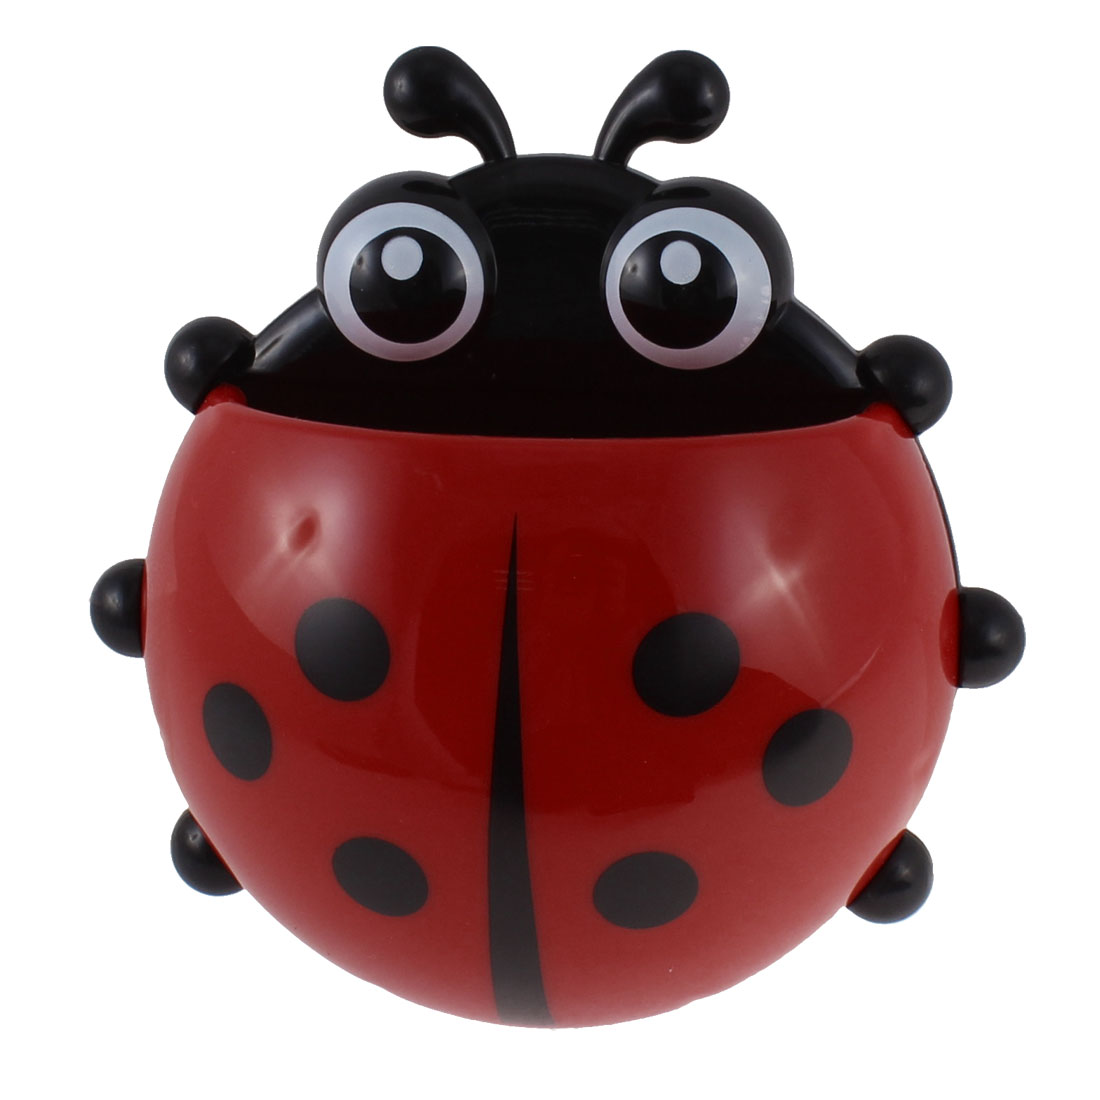 Bathroom Wall Suction Stand Ladybird Design Toothbrush Rack Holder Red